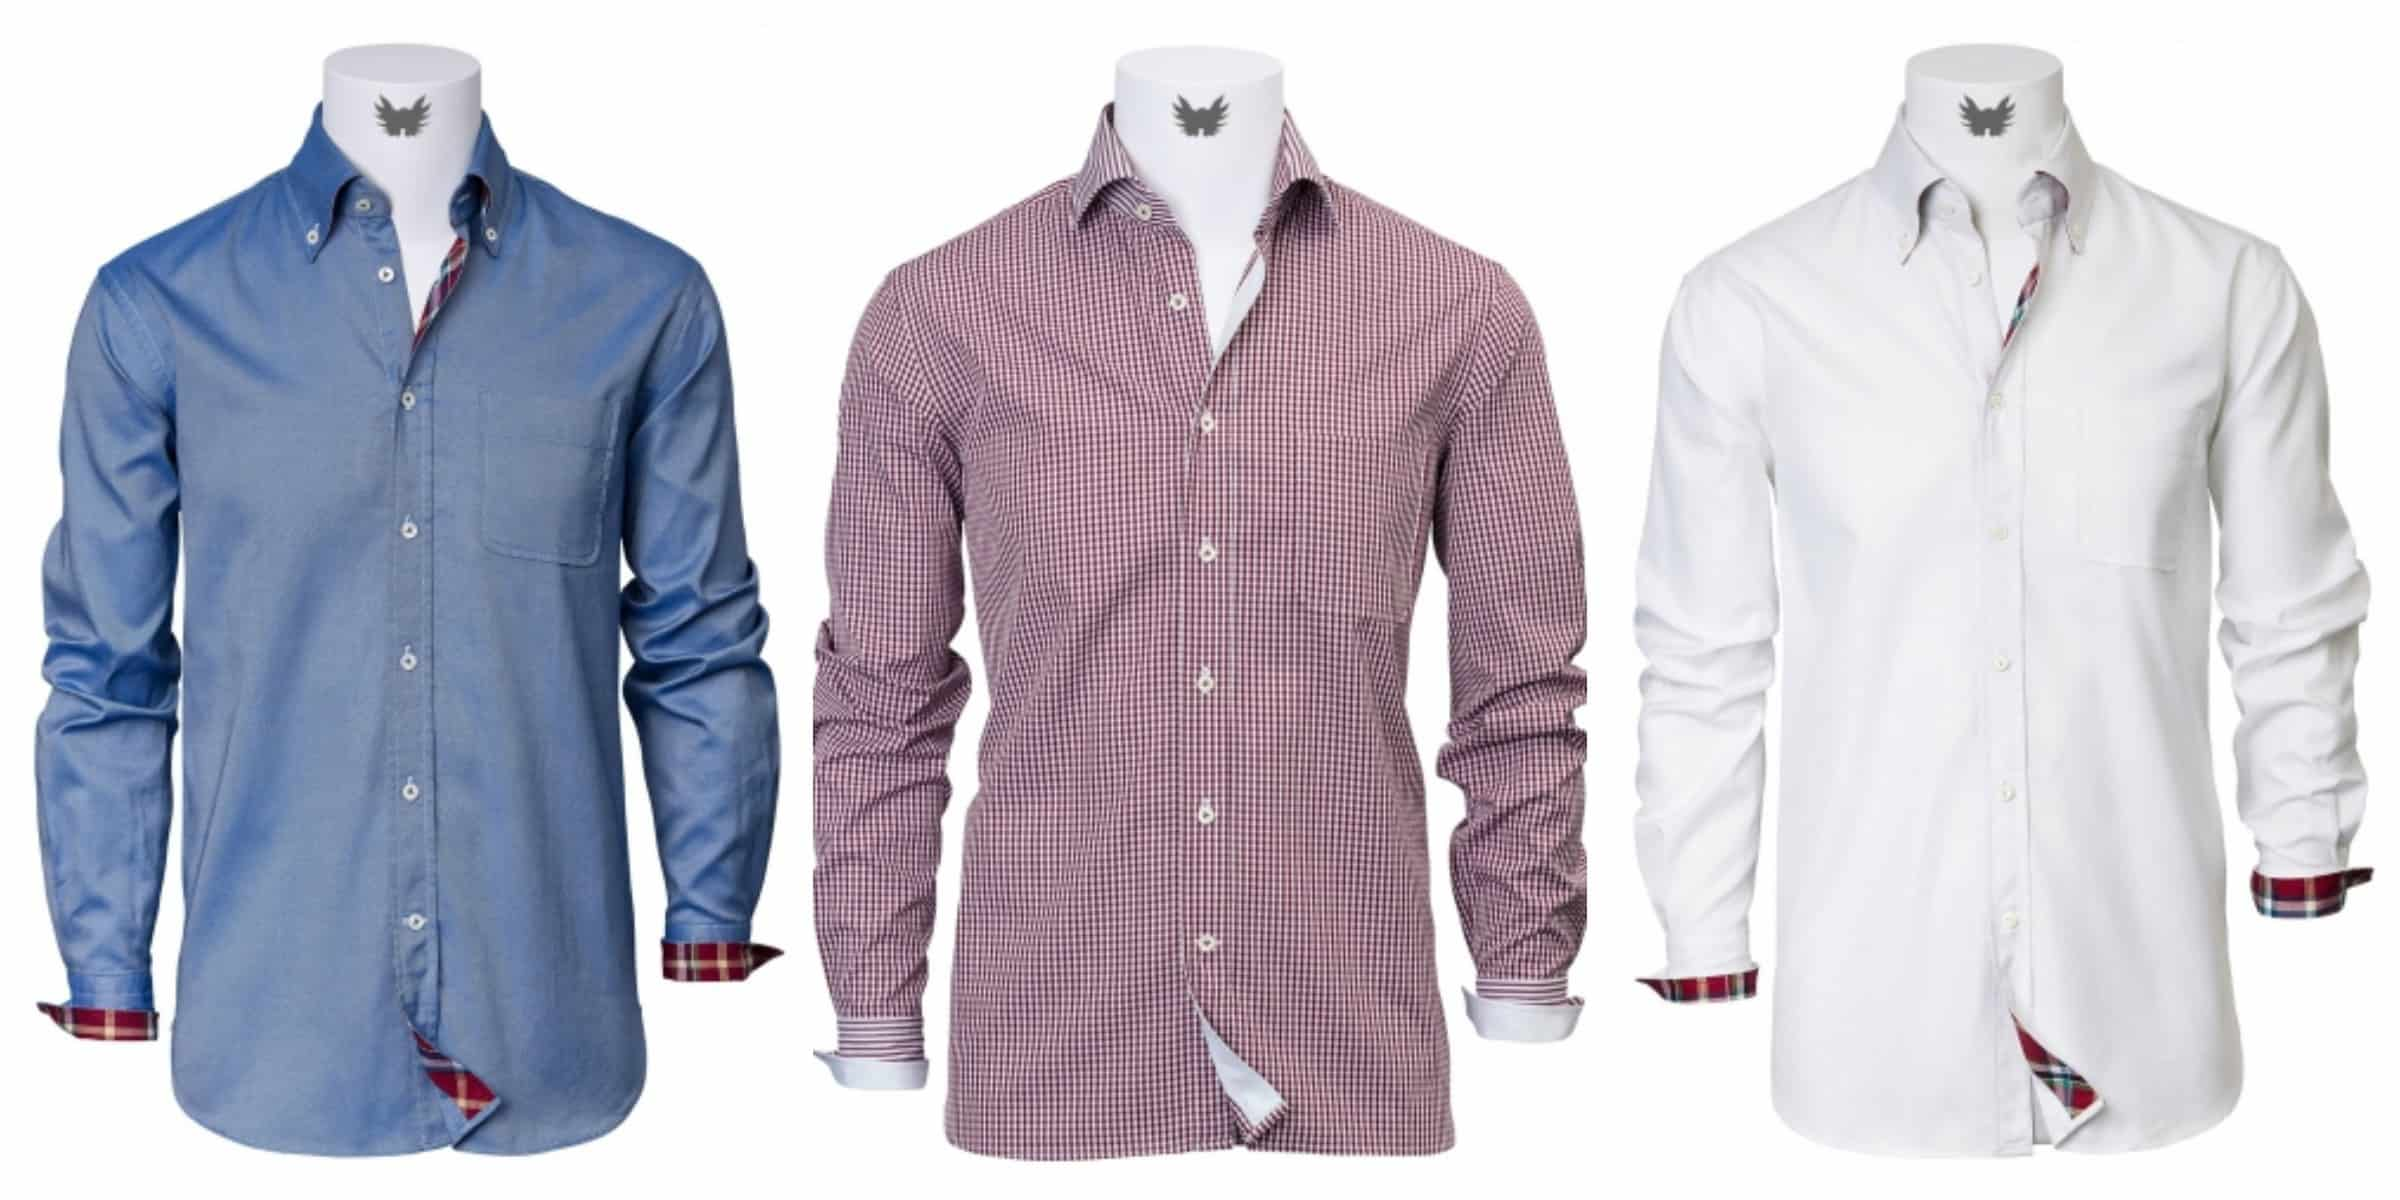 men button down shirts from NATTY SHIRTS SHOP